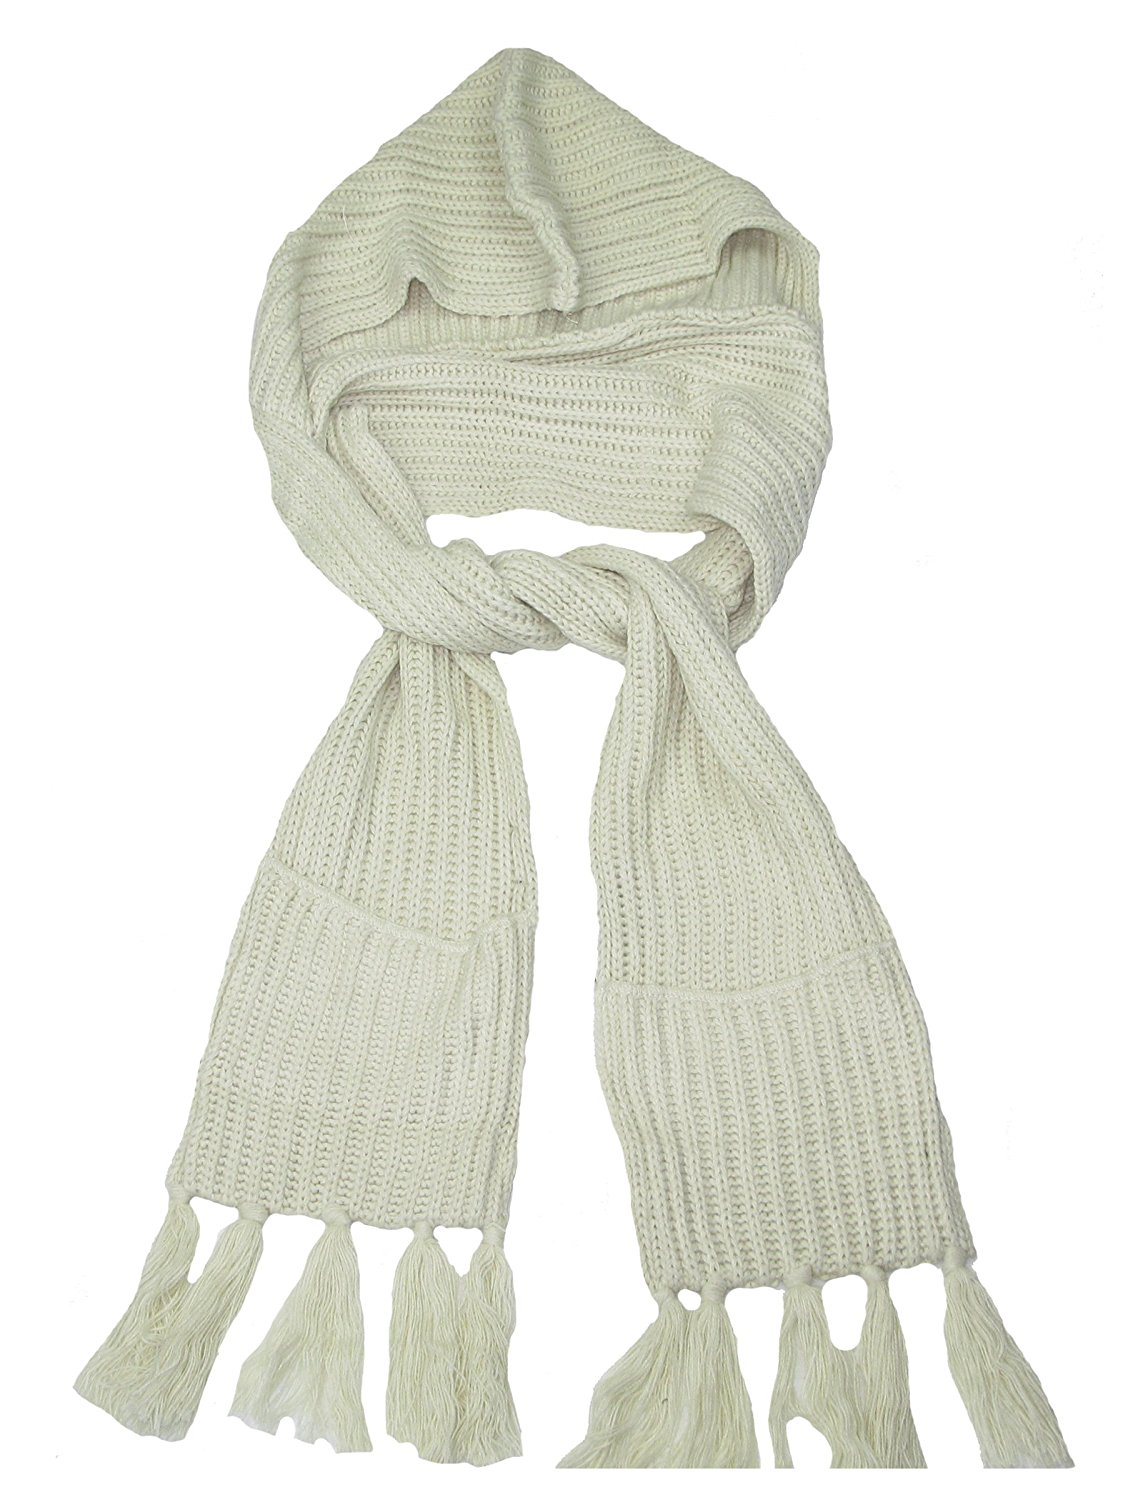 Cheap Hooded Scarf Pockets Find Hooded Scarf Pockets Deals On Line